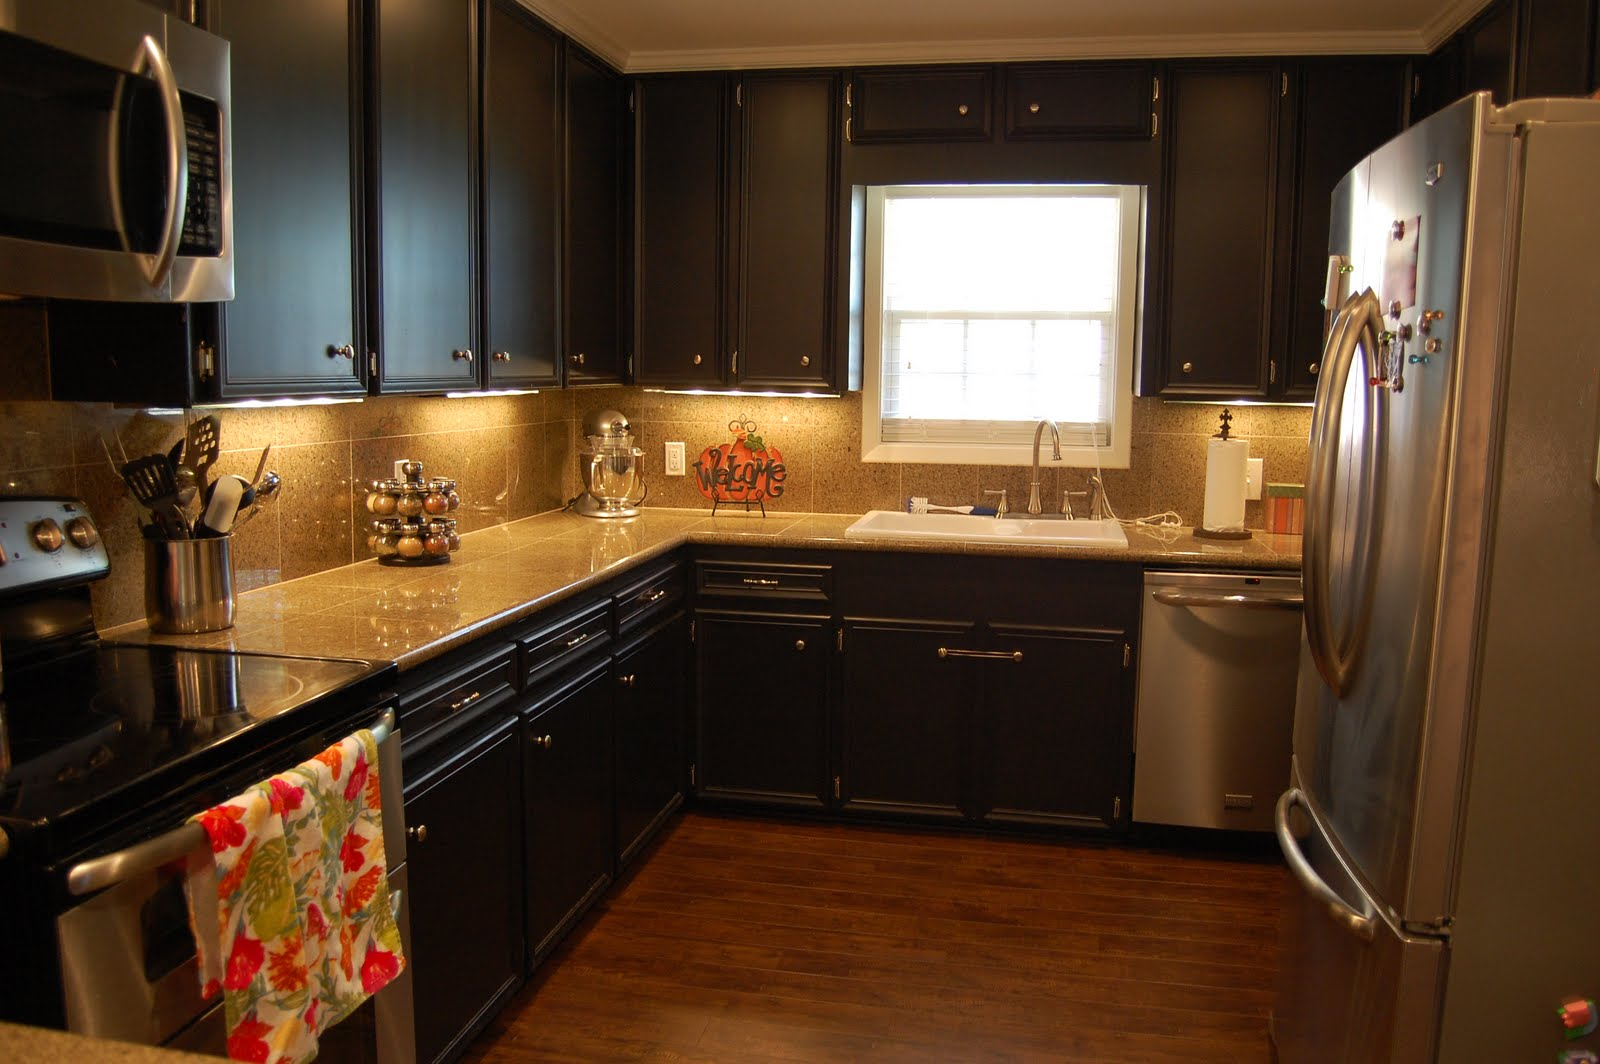 Small kitchen remodels before and after pictures kitchen for Small dark kitchen ideas